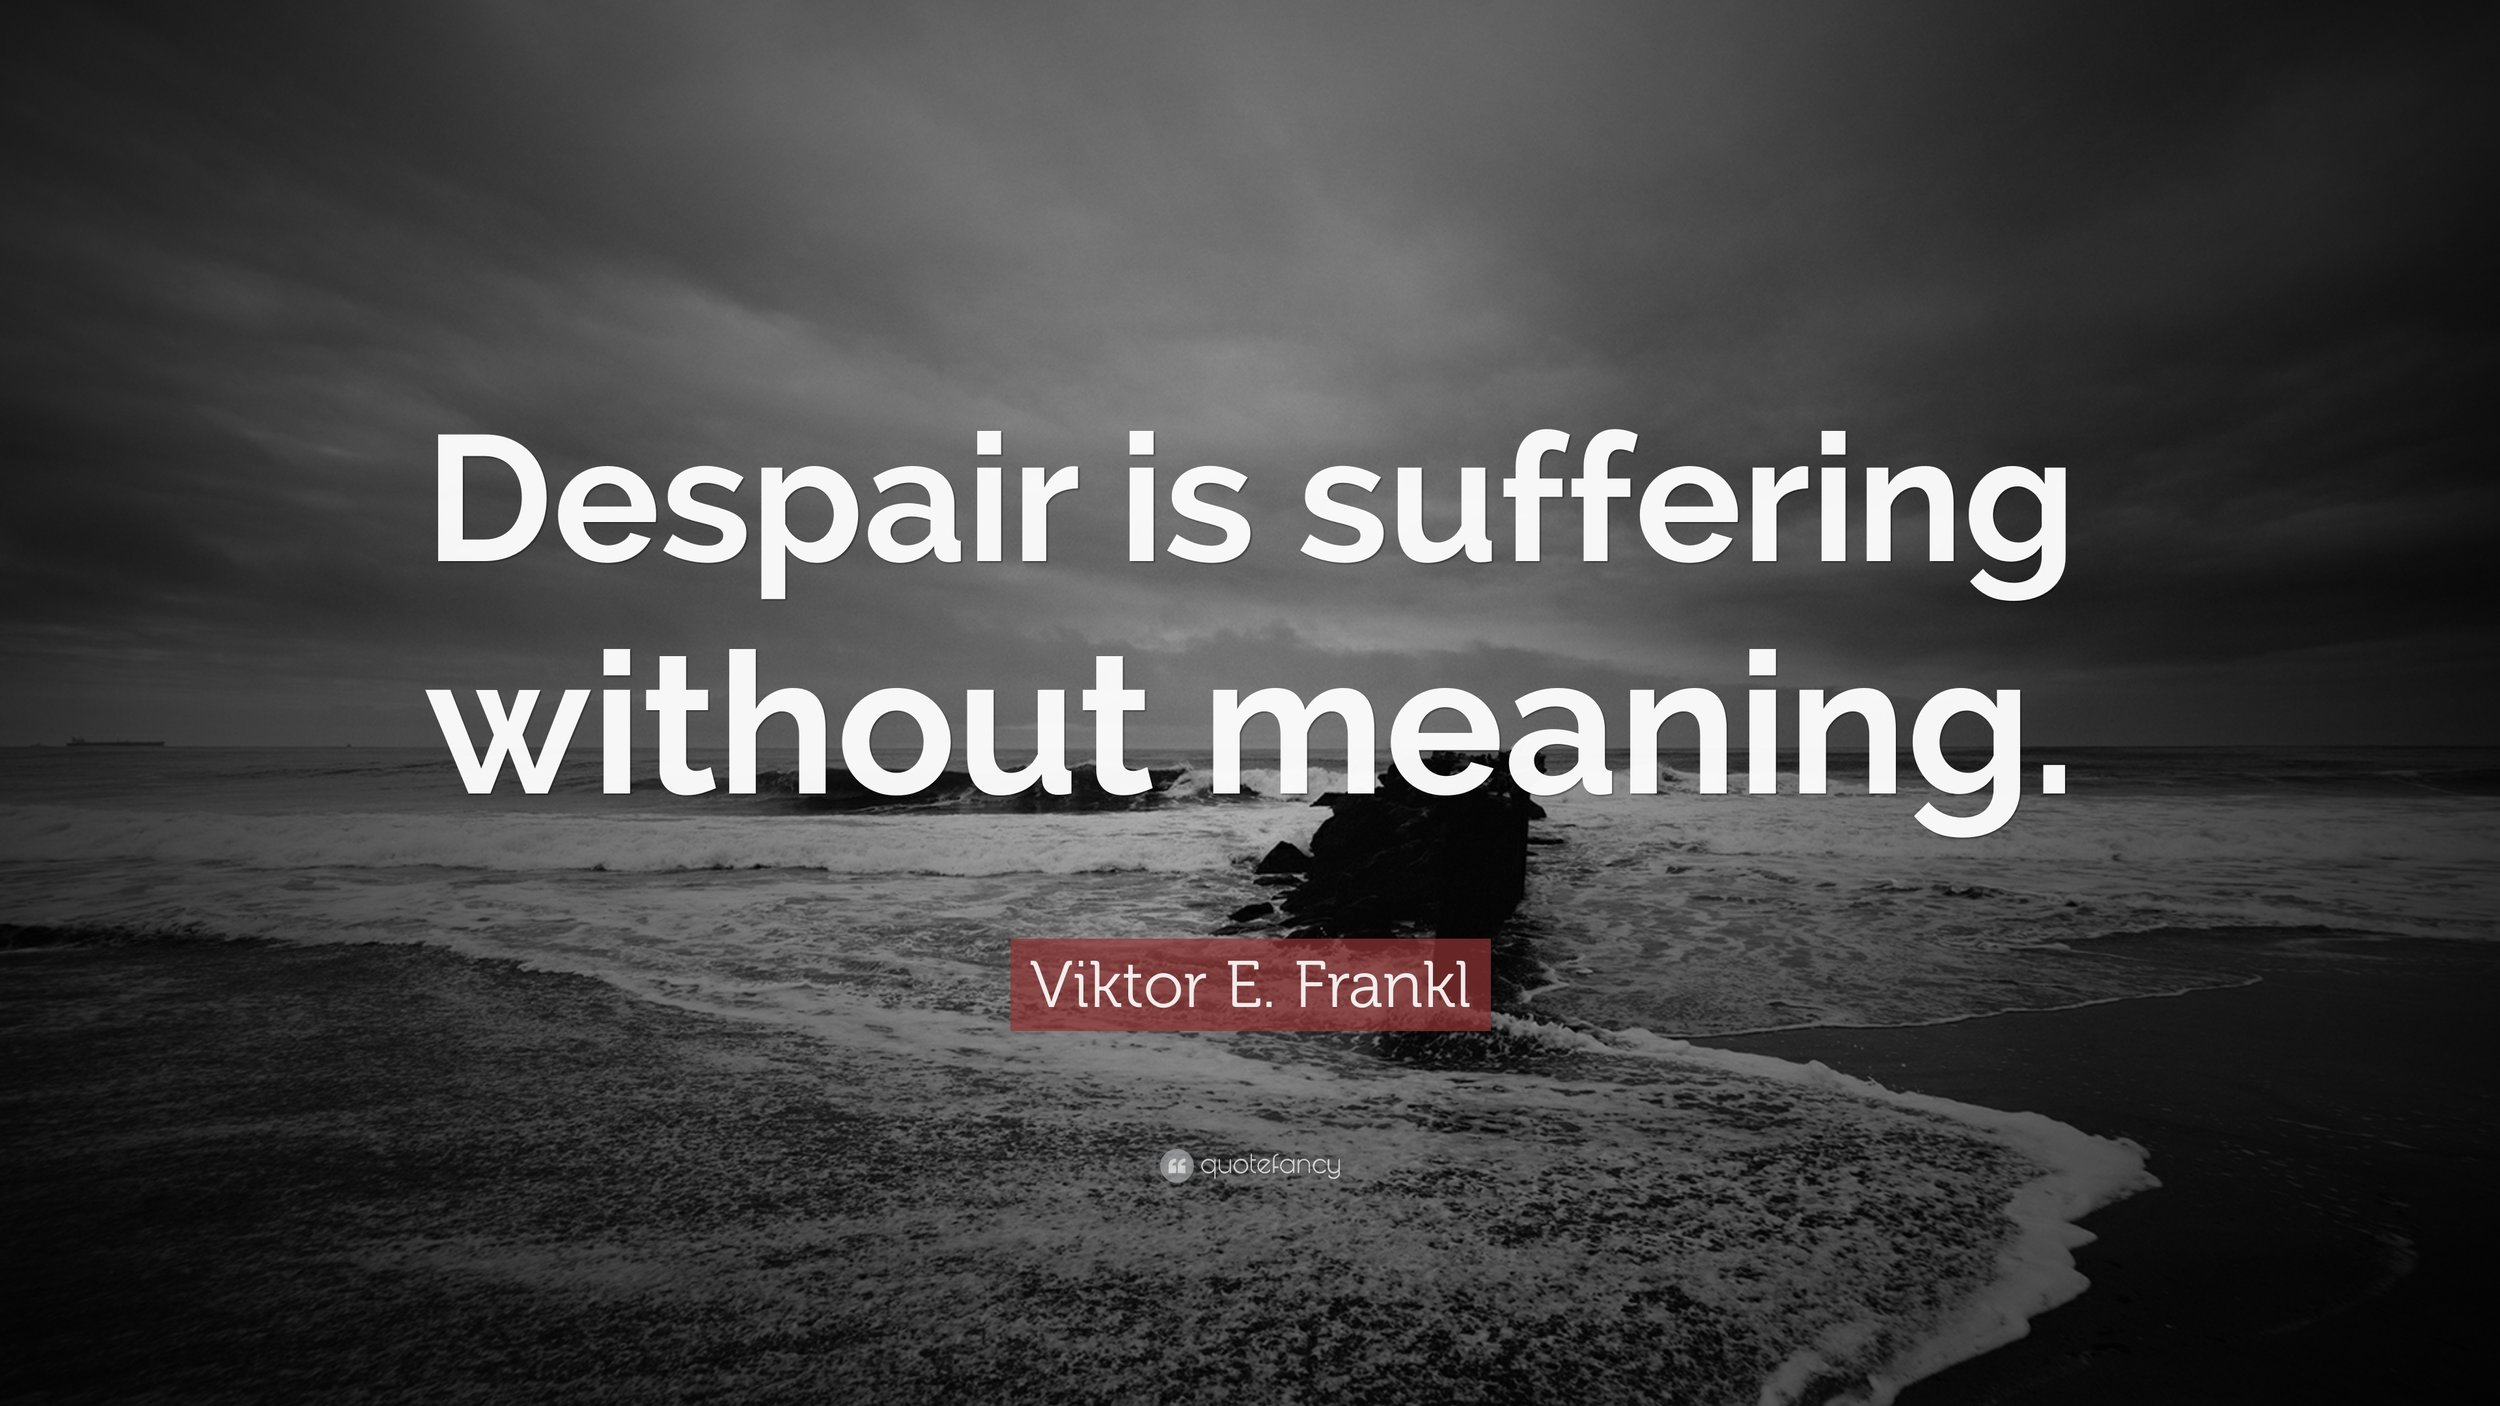 387536-Viktor-E-Frankl-Quote-Despair-is-suffering-without-meaning.jpg